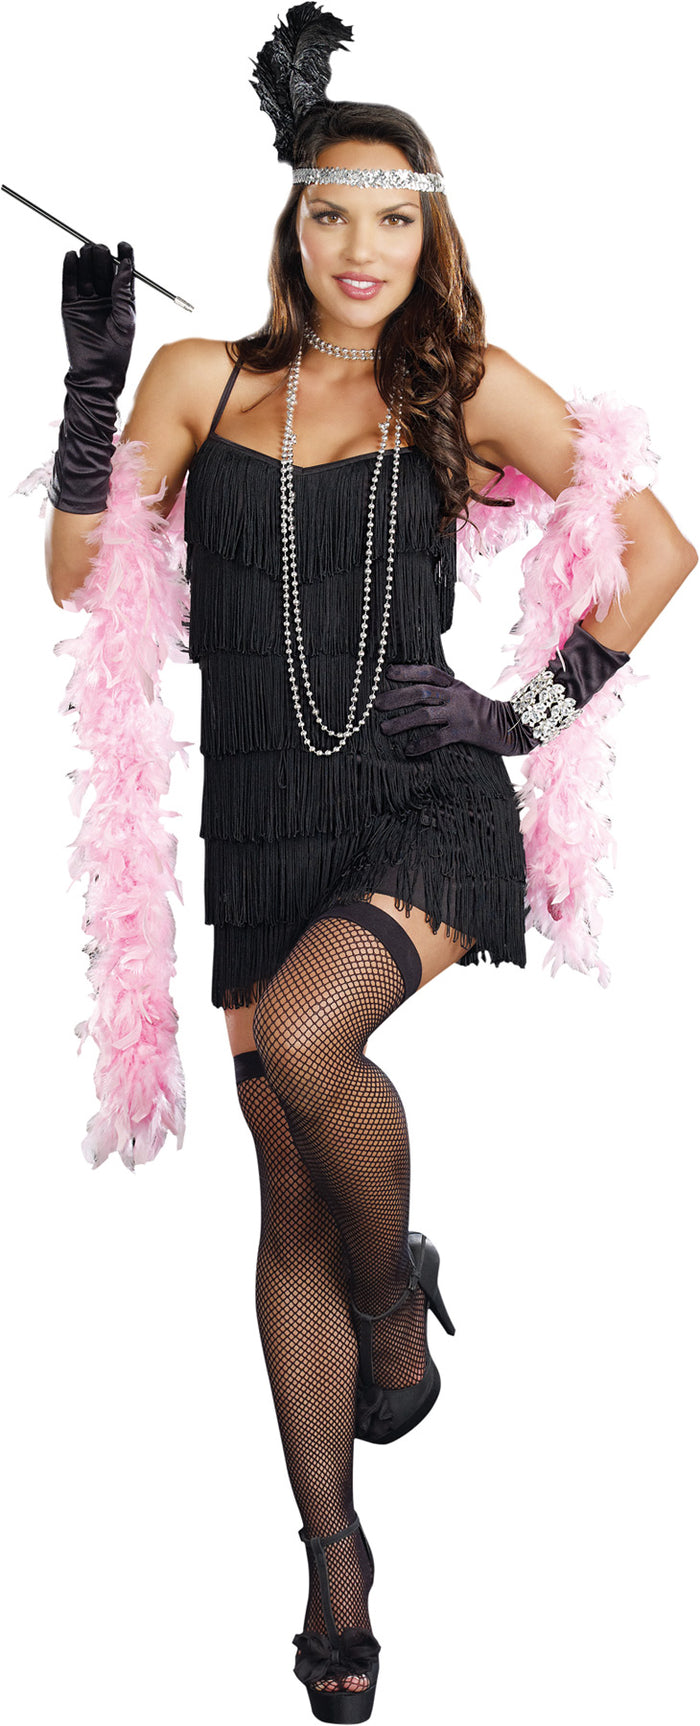 adult female costume, Flapper Basic Dress Xl, Gangster & Flapper Costume, Halloween Costumes, Women's Costumes, Women's Plus Size Costume